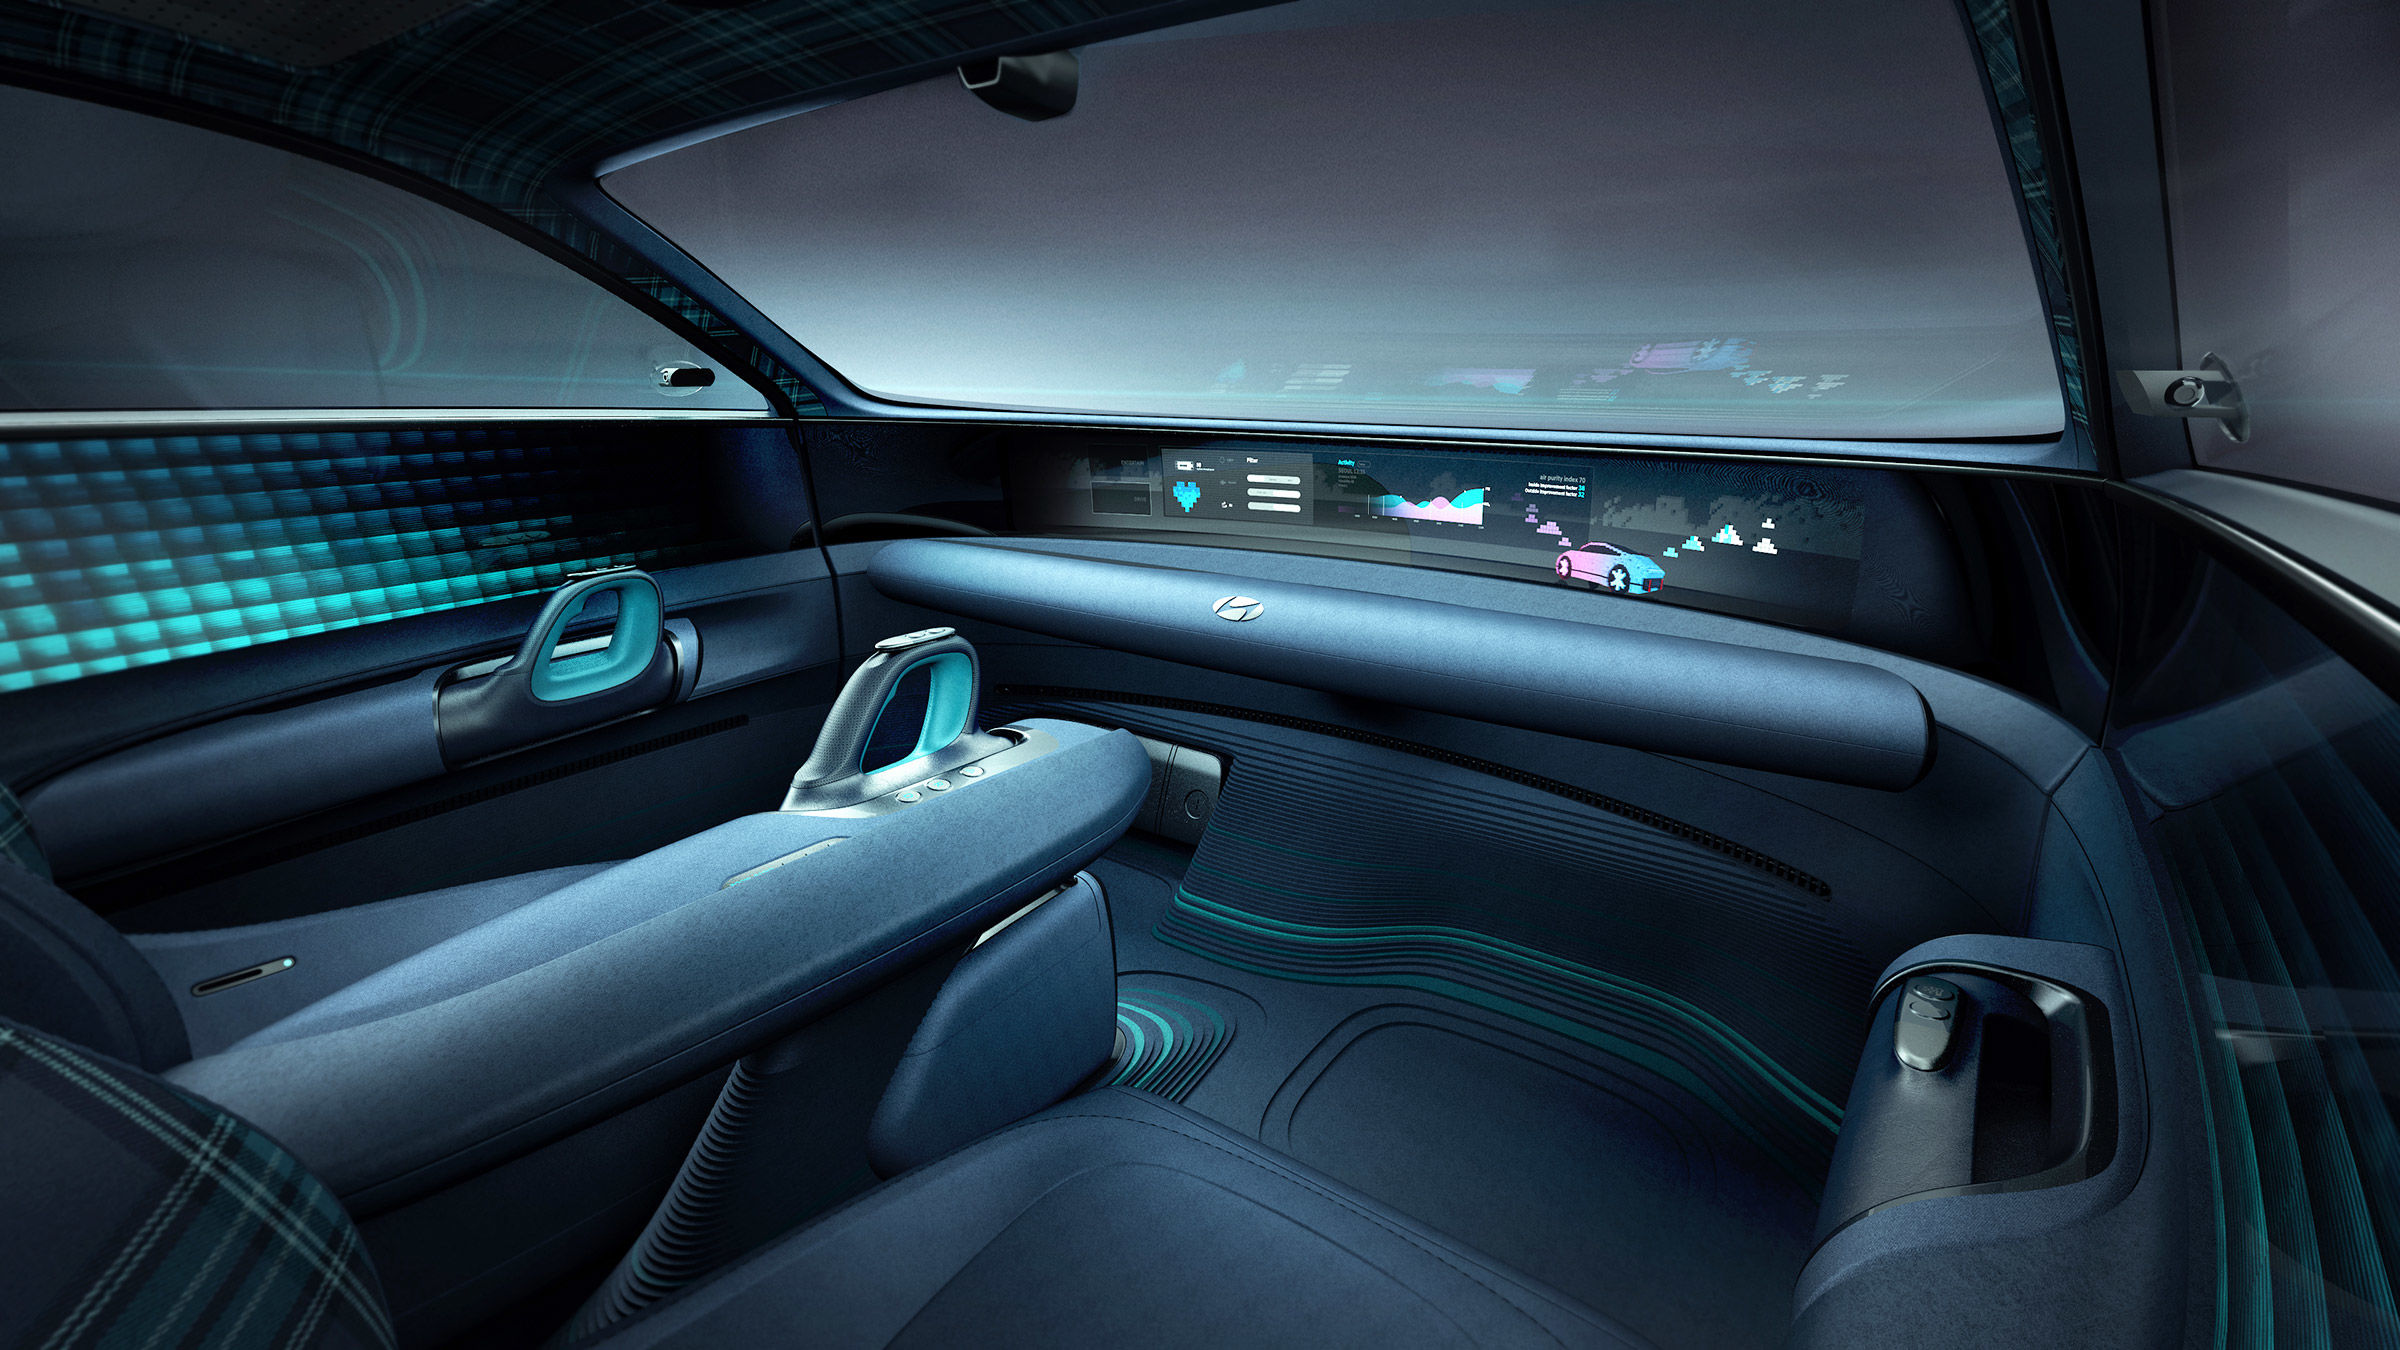 A glimpse of the interior shows how the space has been utilised to provide comfort and a lifestyle space of refinement. Created on the autonomous driving technology, the car is operated by joysticks instead of steering wheel.